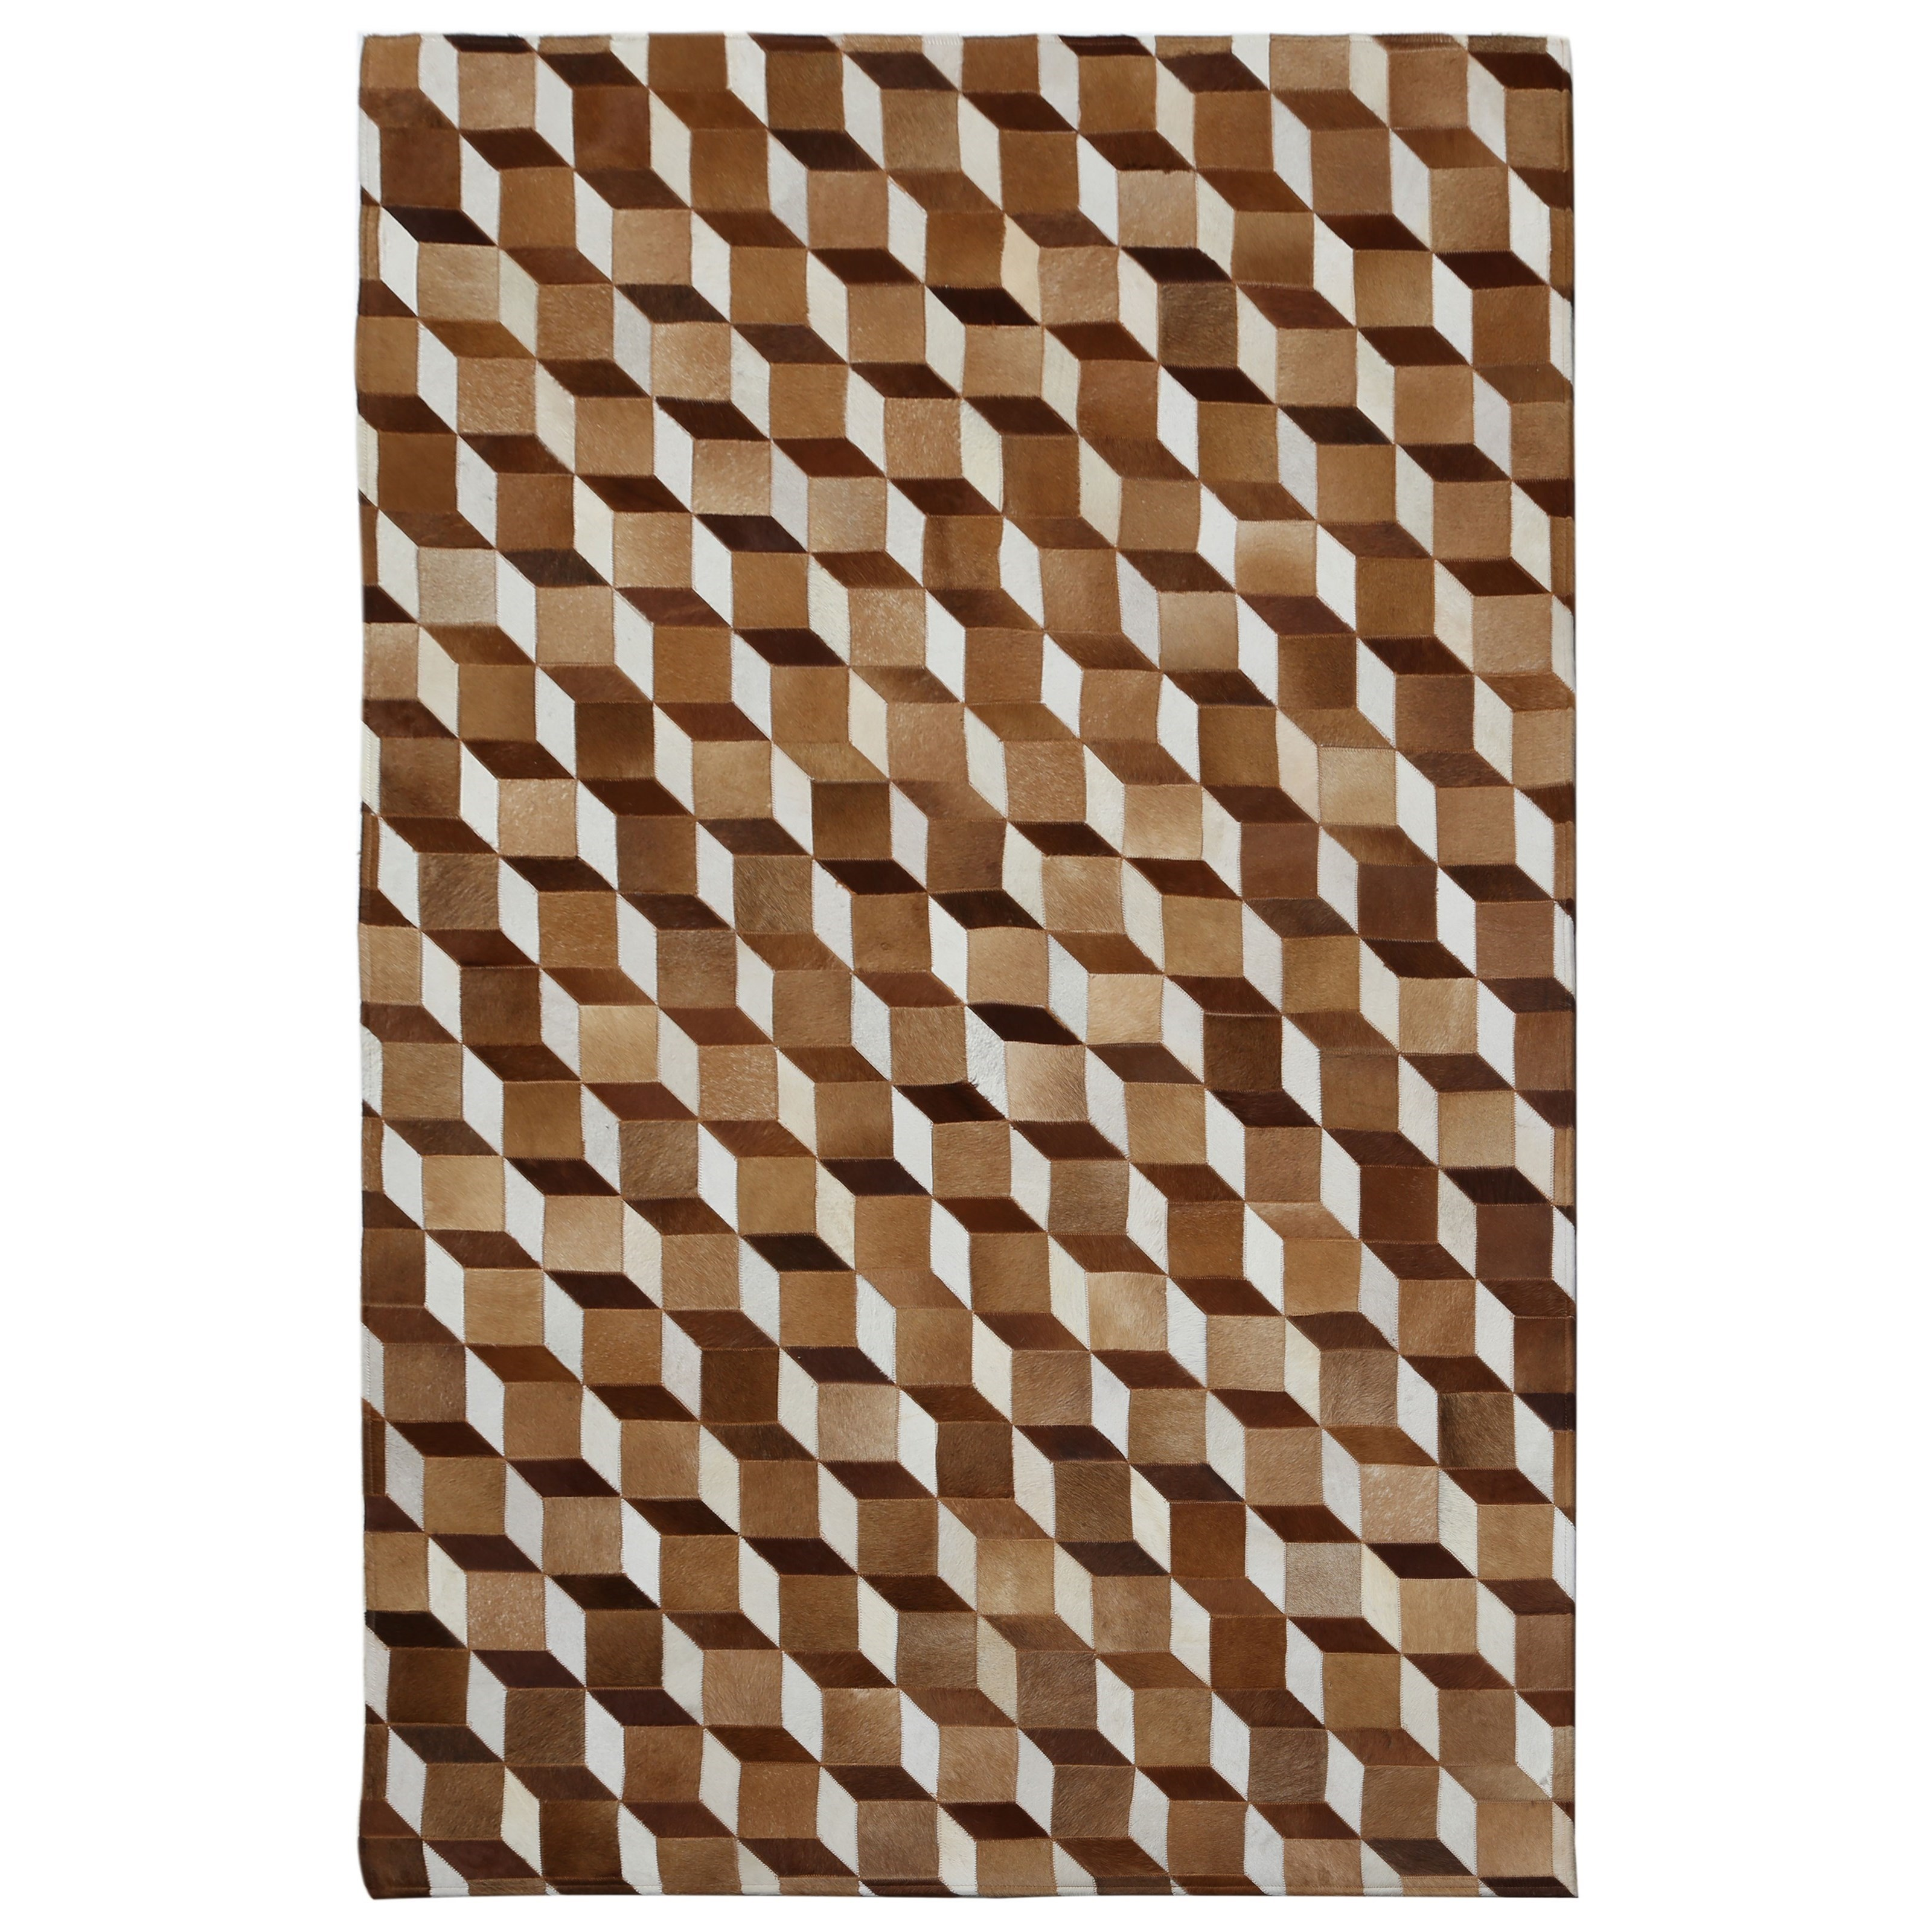 Butler Specialty Company Hair On Hide Rug 5' X 8' Area Rug - Item Number: 9601351